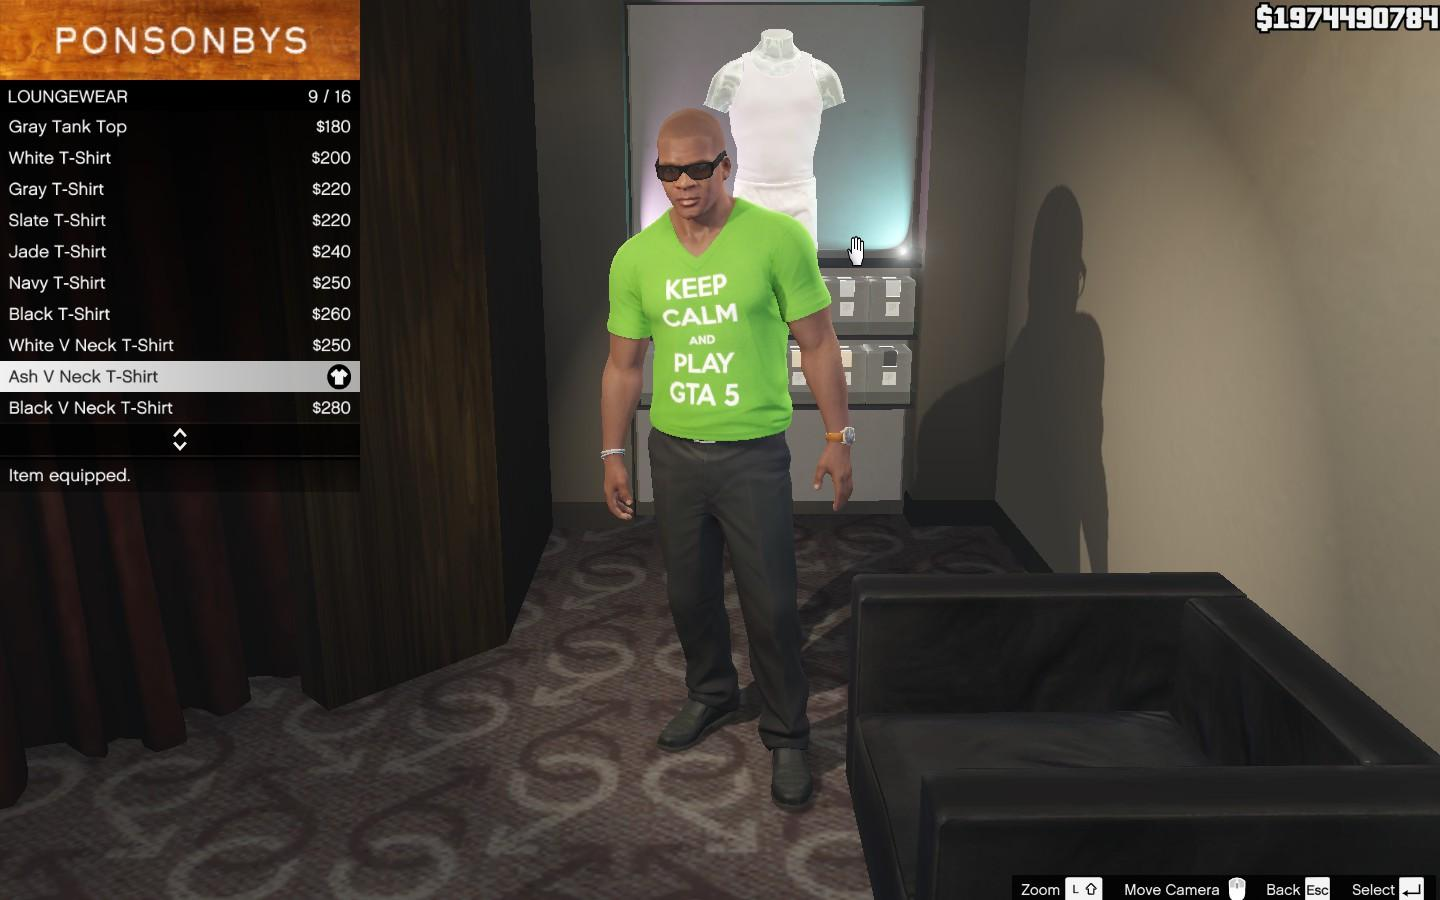 how to play gta5 on ps3 12gb